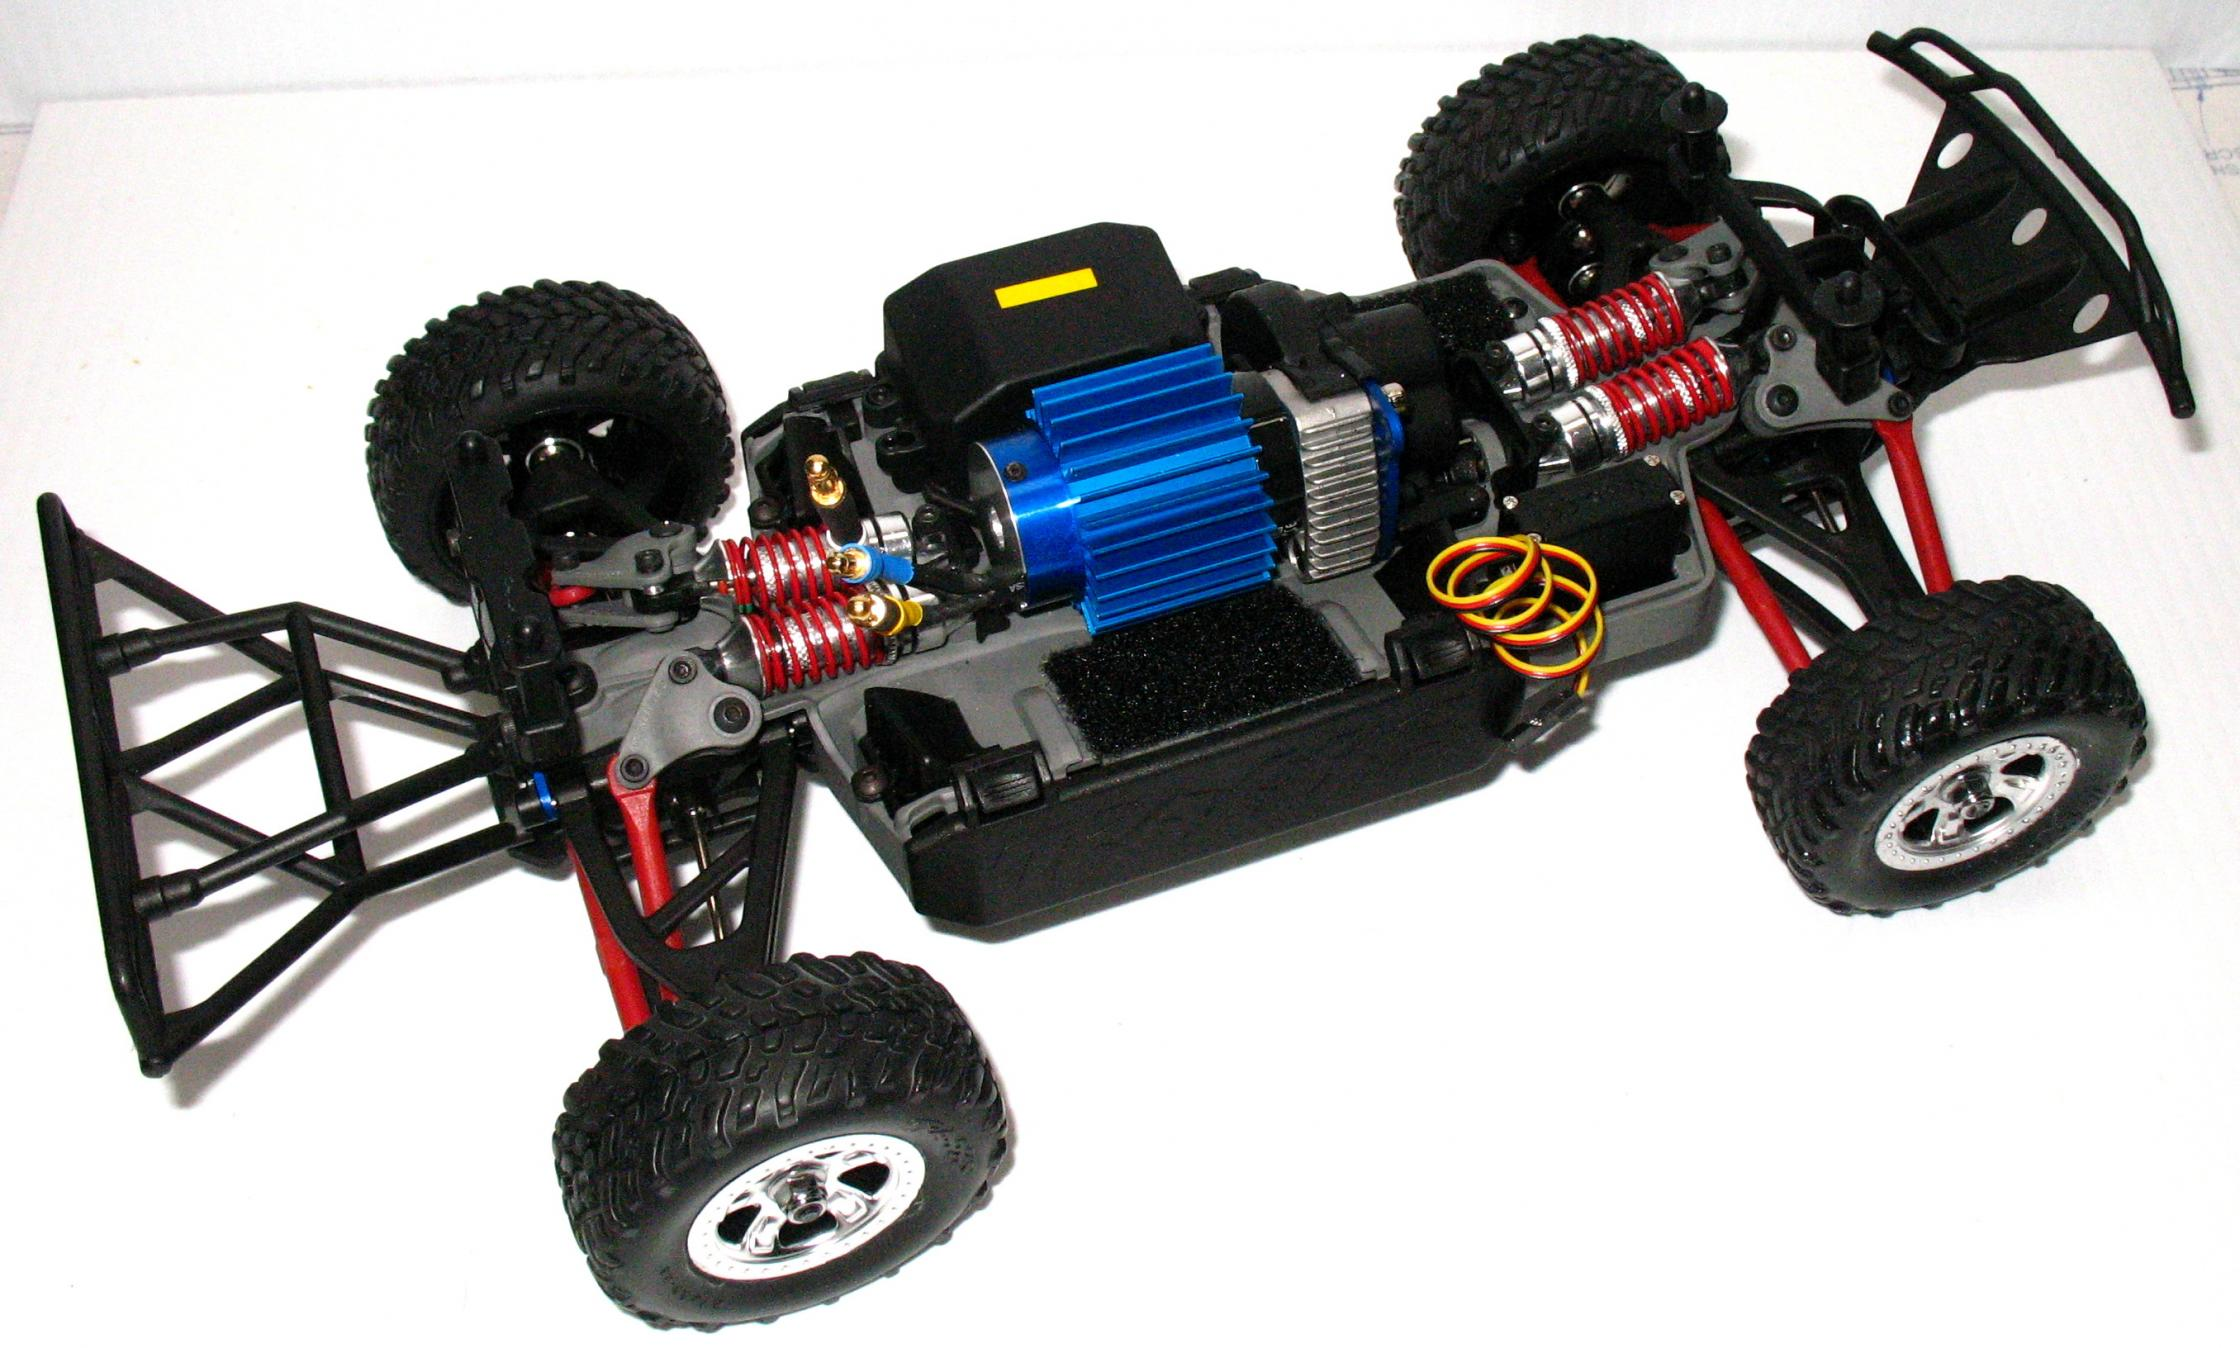 sale UPGRADED brushless 1 16 4WD Traxxas Slash with Velineon and